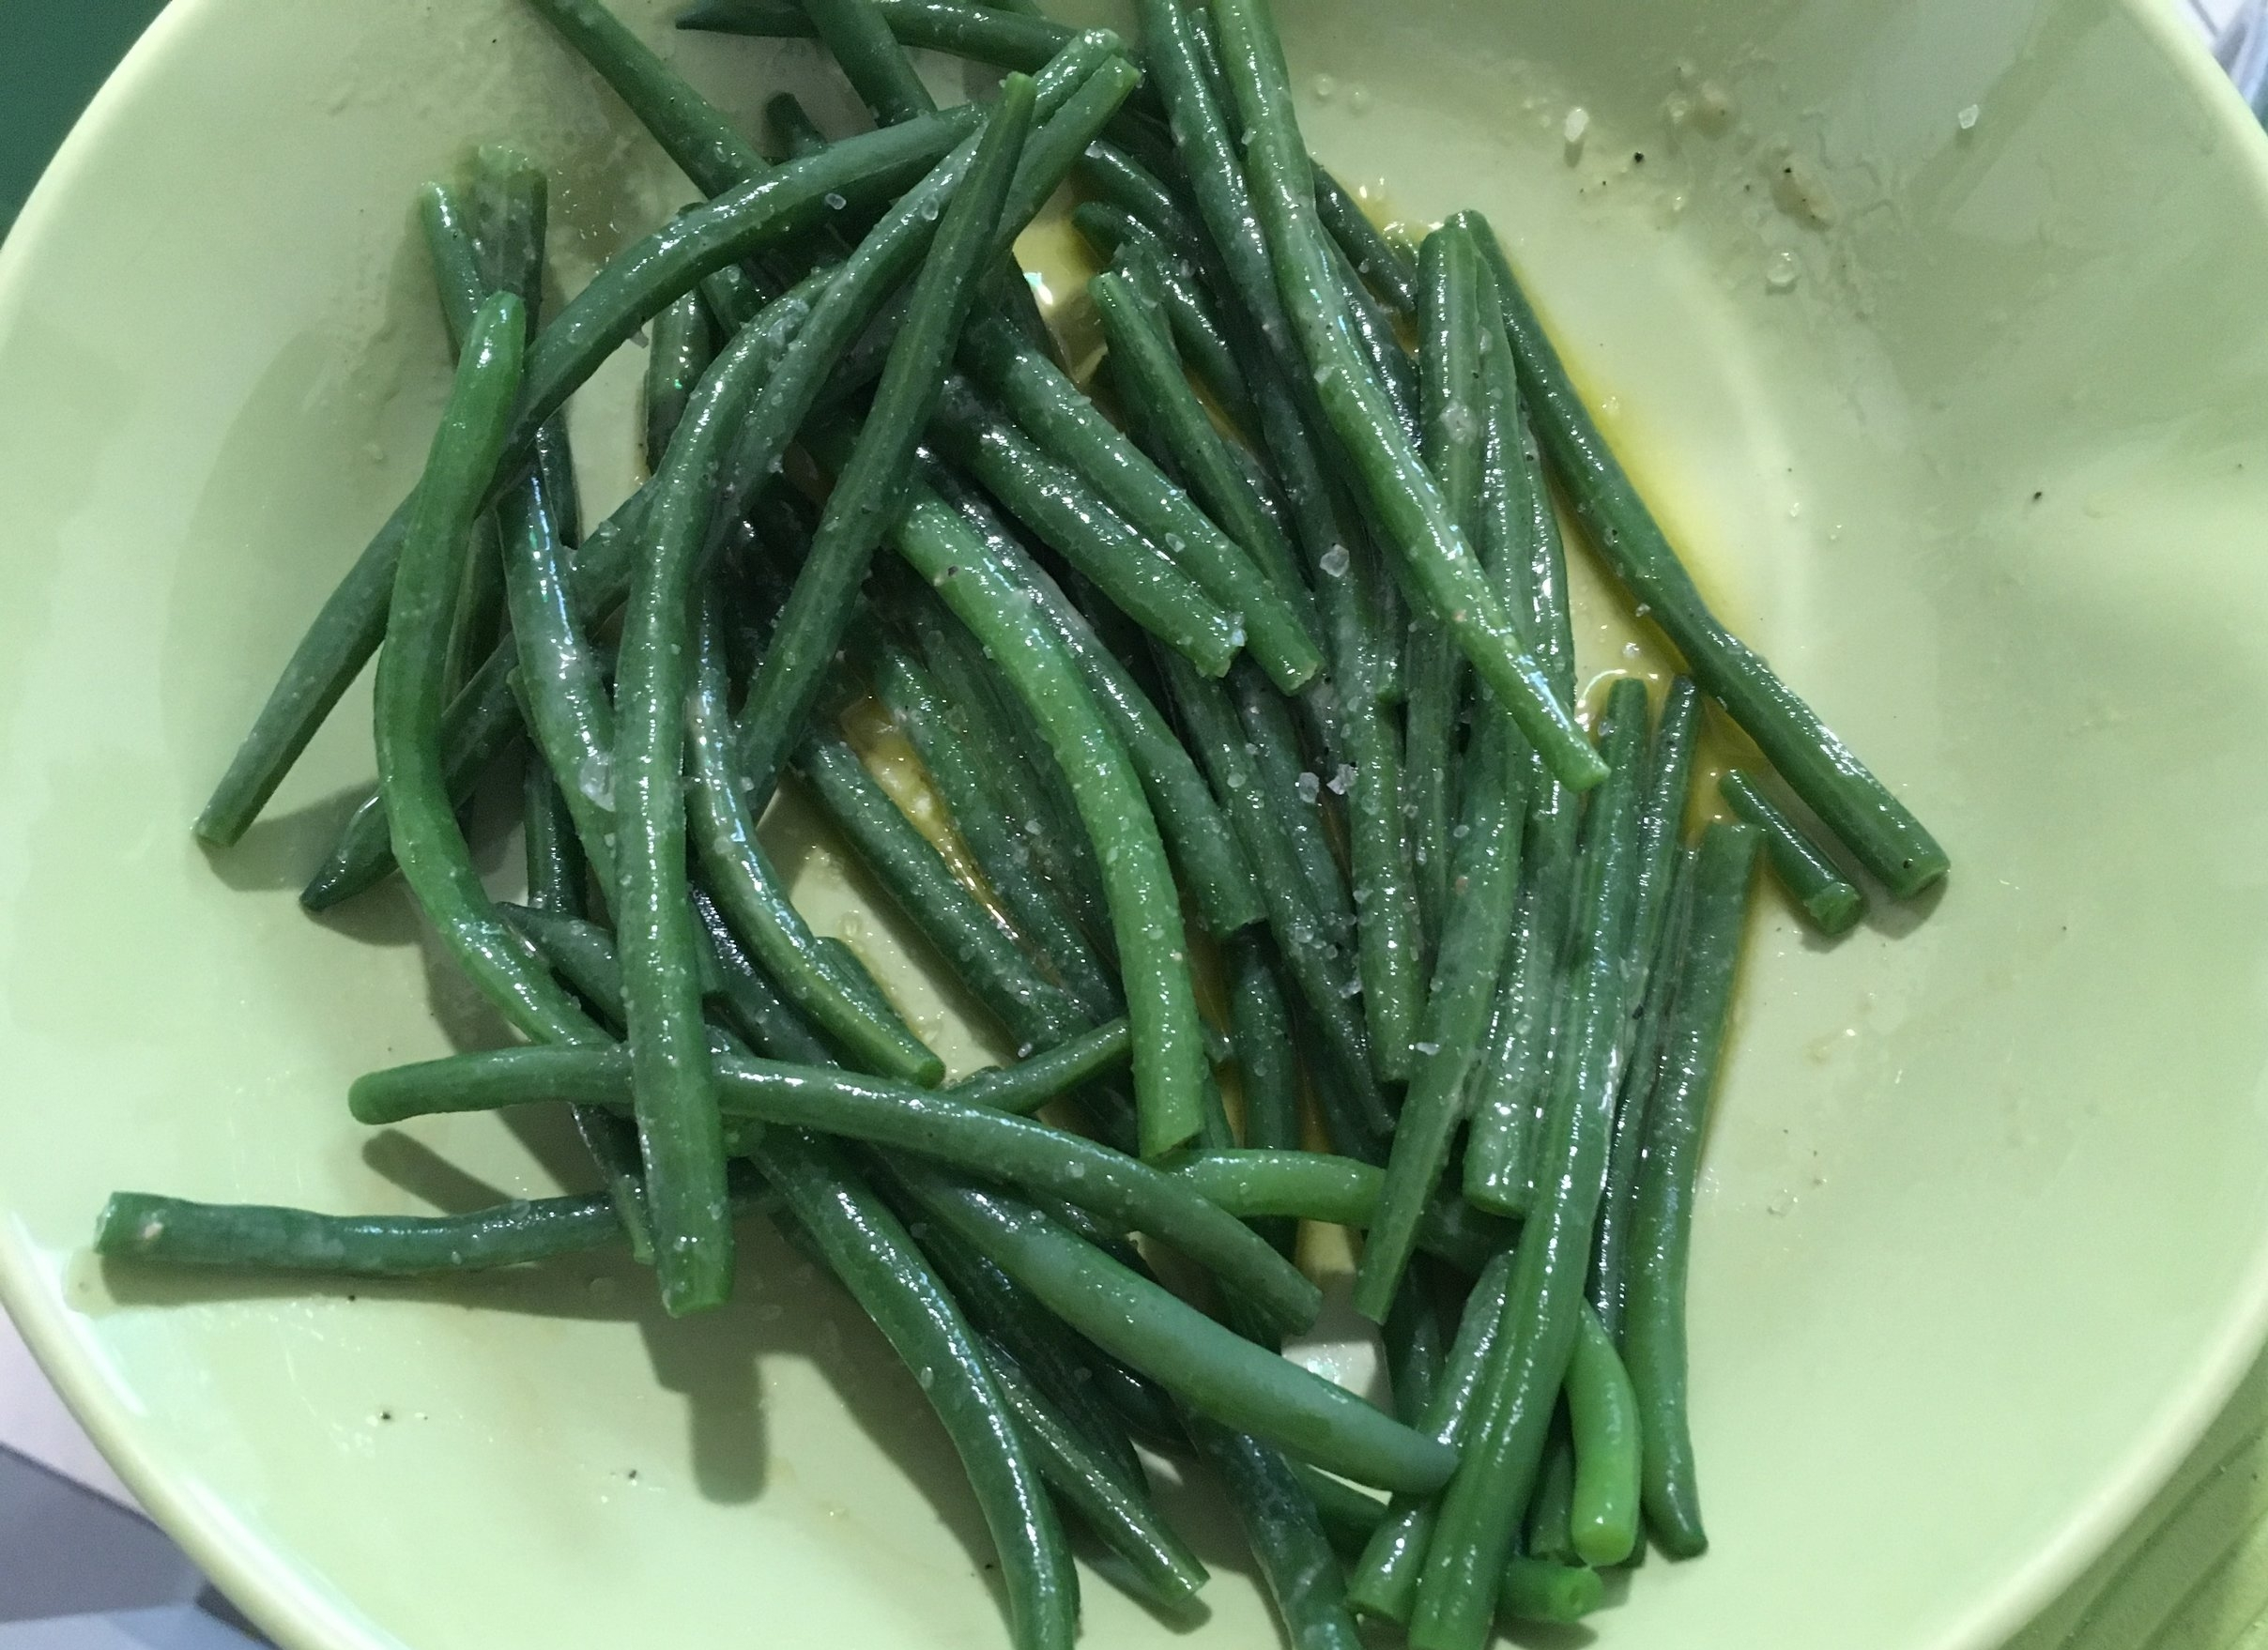 Finished marinated green beans.